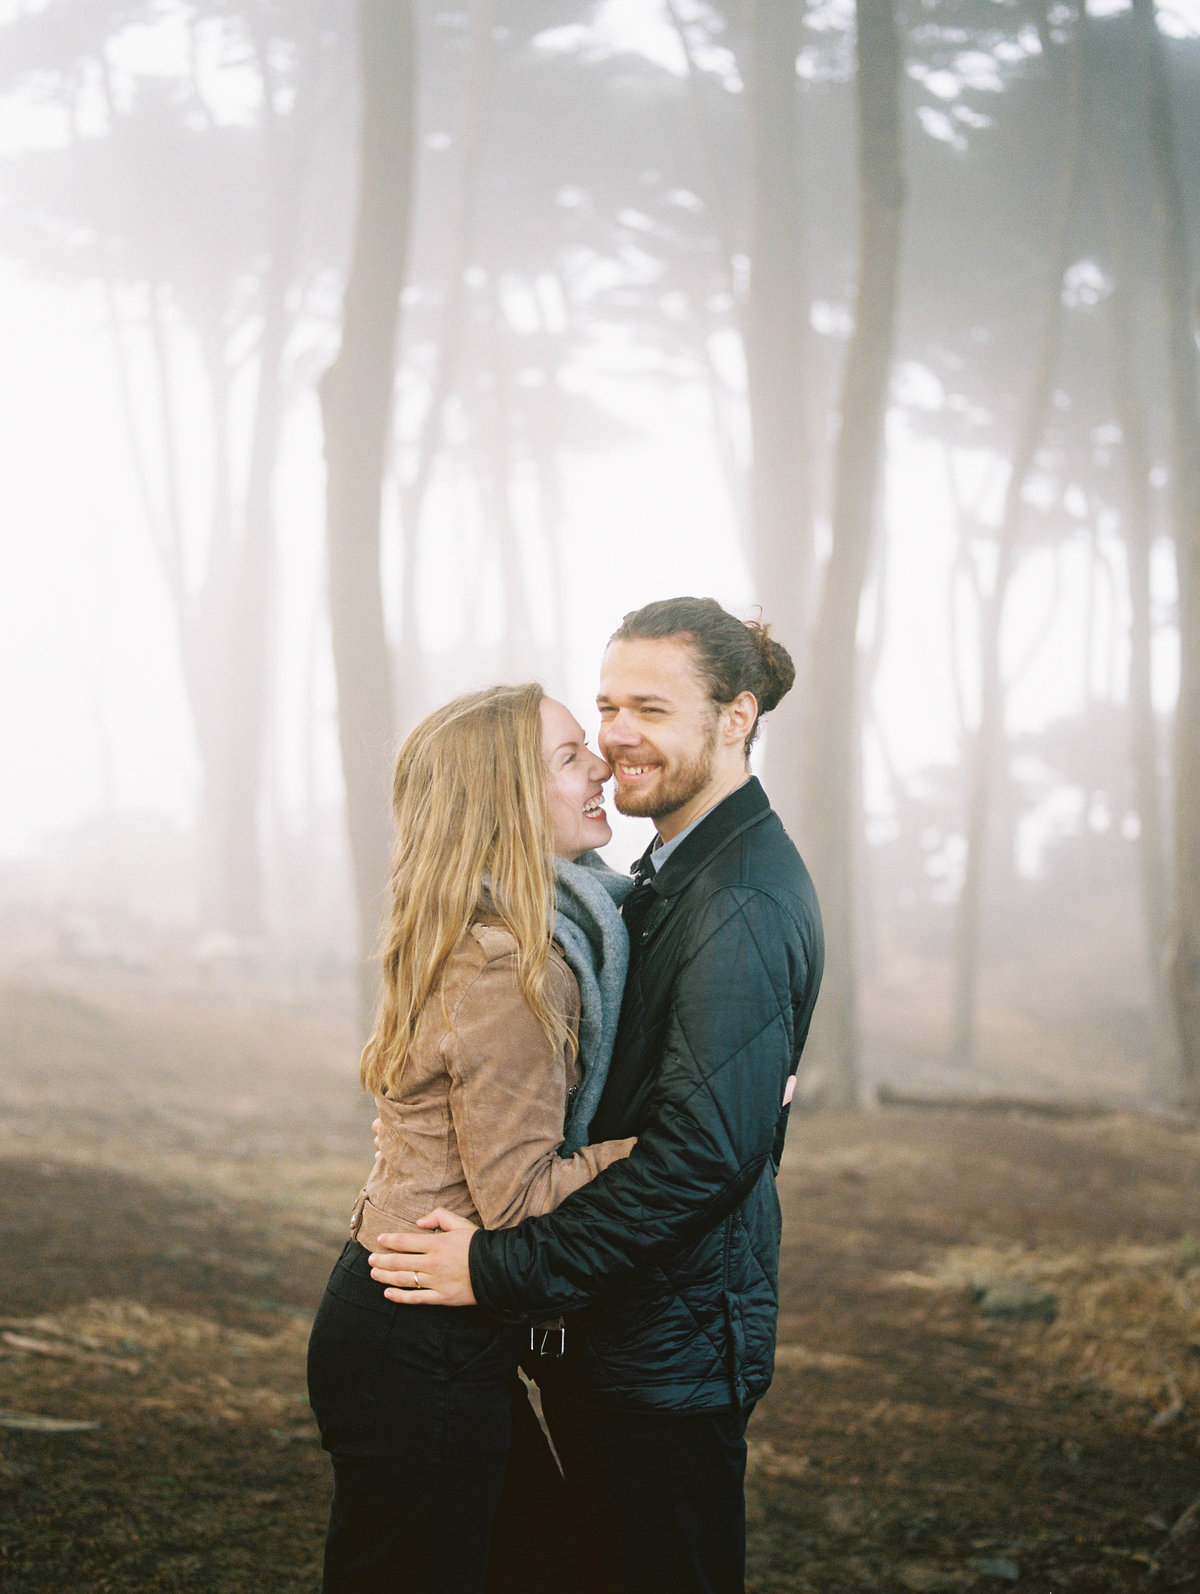 Foggy portrait session at Lands End in San Francisco, California